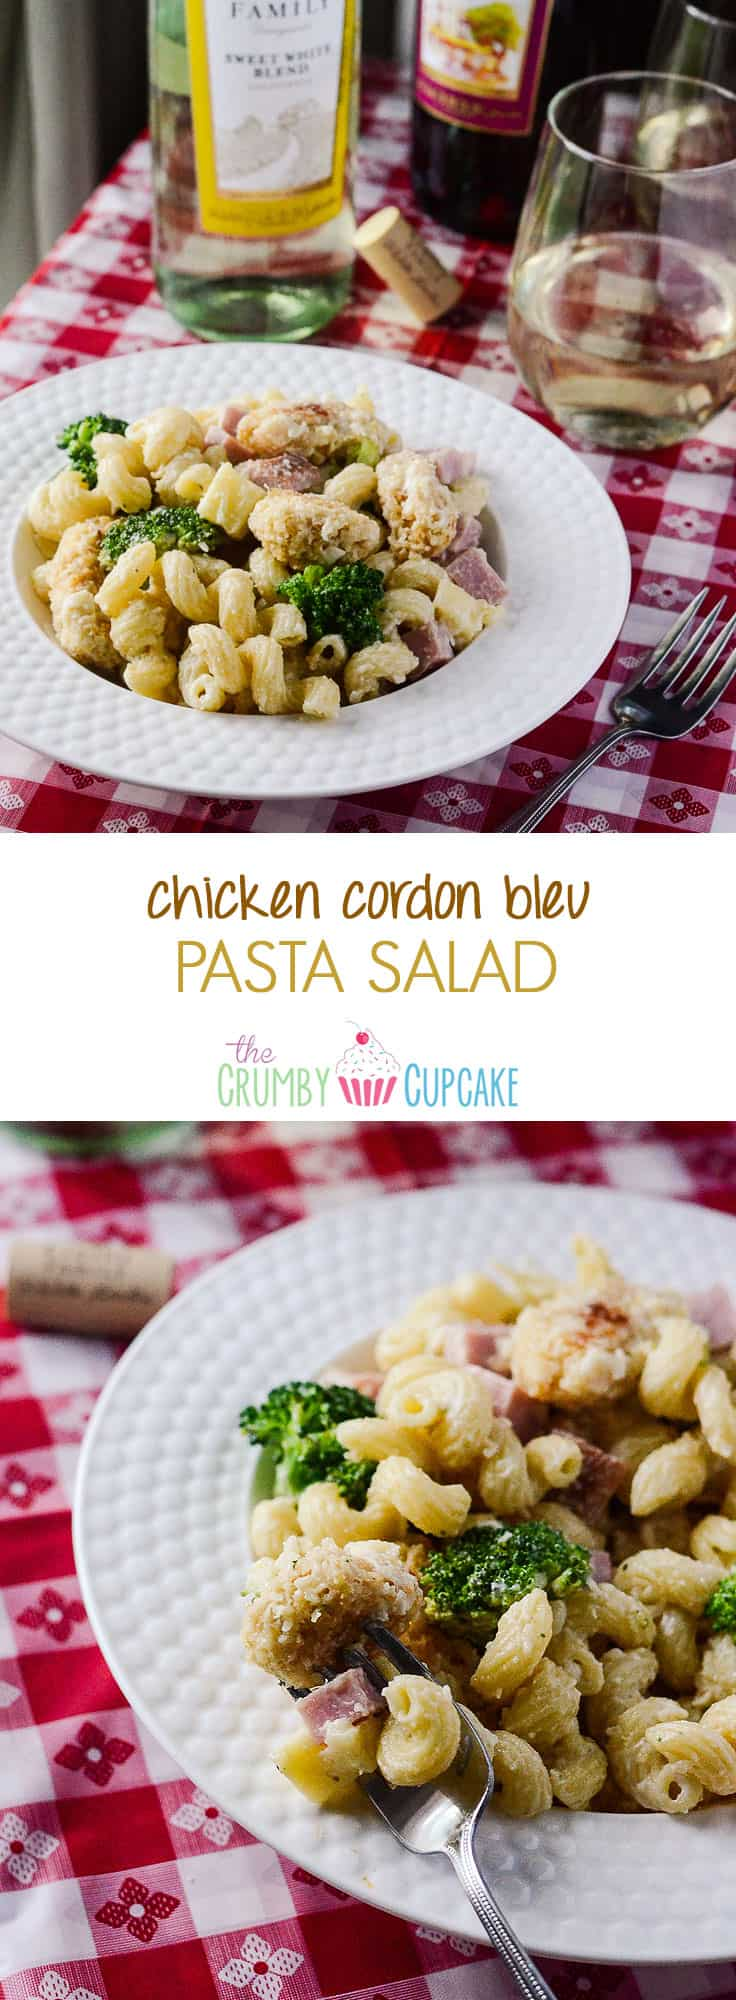 Chicken Cordon Bleu Pasta Salad | A perfect summer pasta salad with a bit of a fancier side - all the frills of Chicken Cordon Bleu, but perfect to bring to any picnic, party, or BBQ!